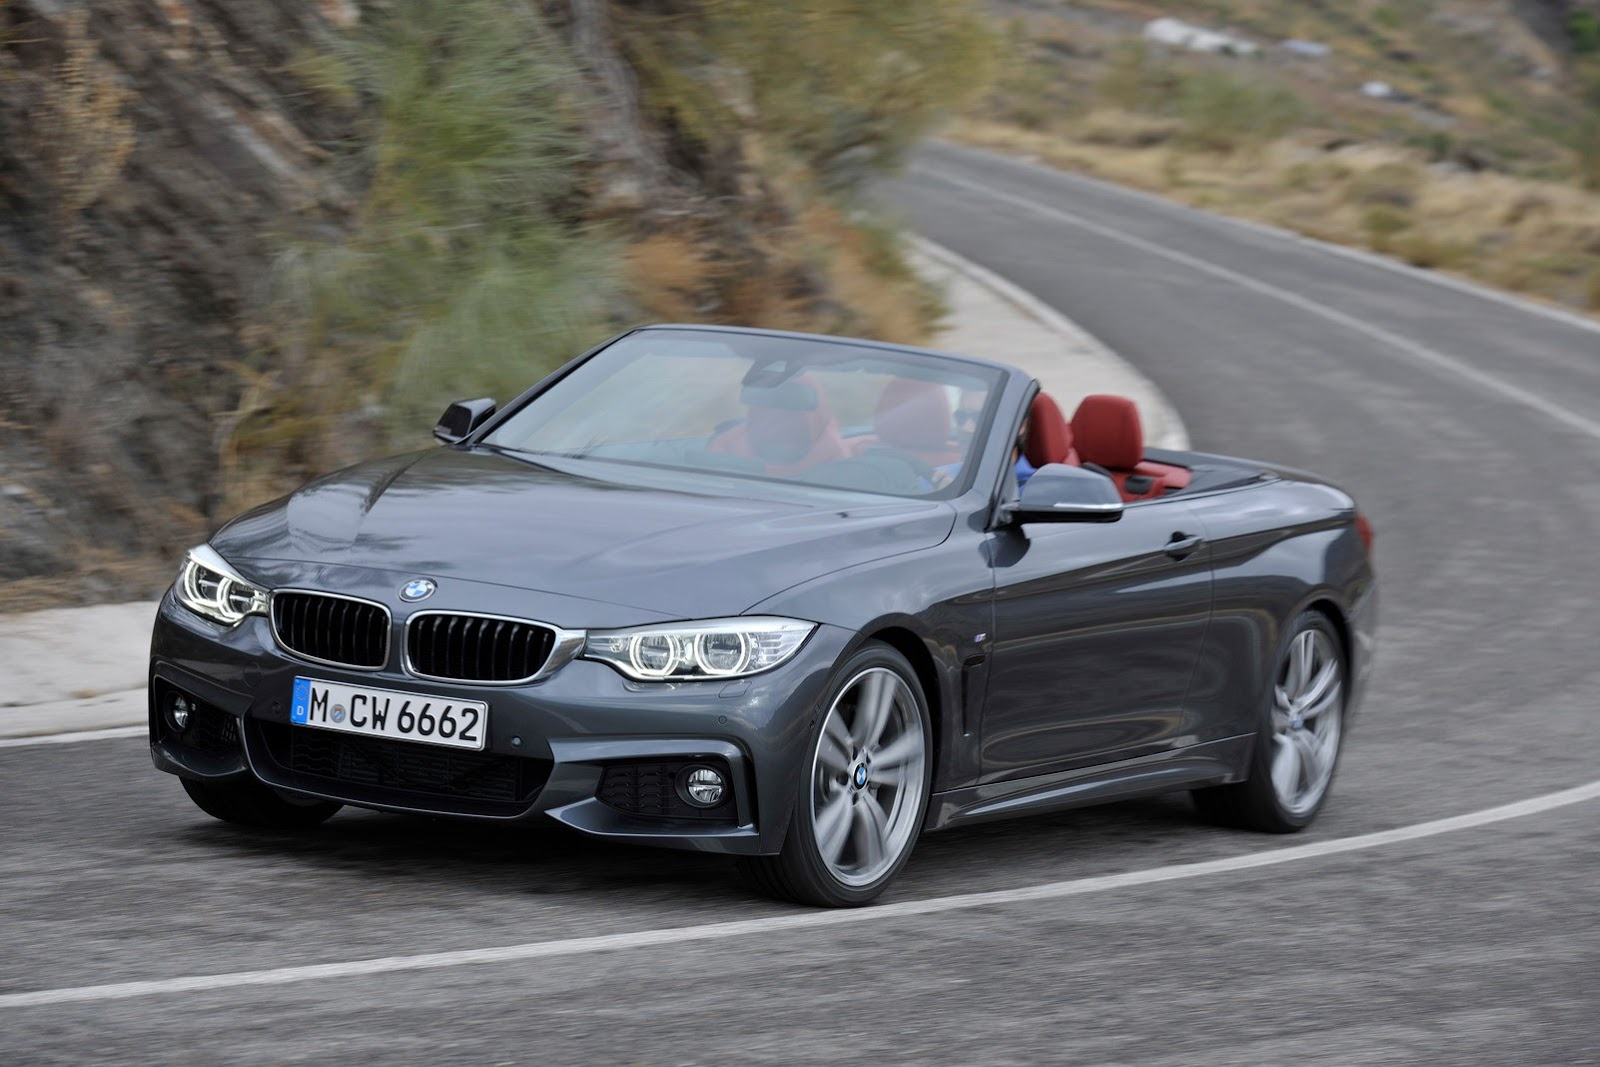 bmw 4er car technical data car specifications vehicle fuel consumption information. Black Bedroom Furniture Sets. Home Design Ideas